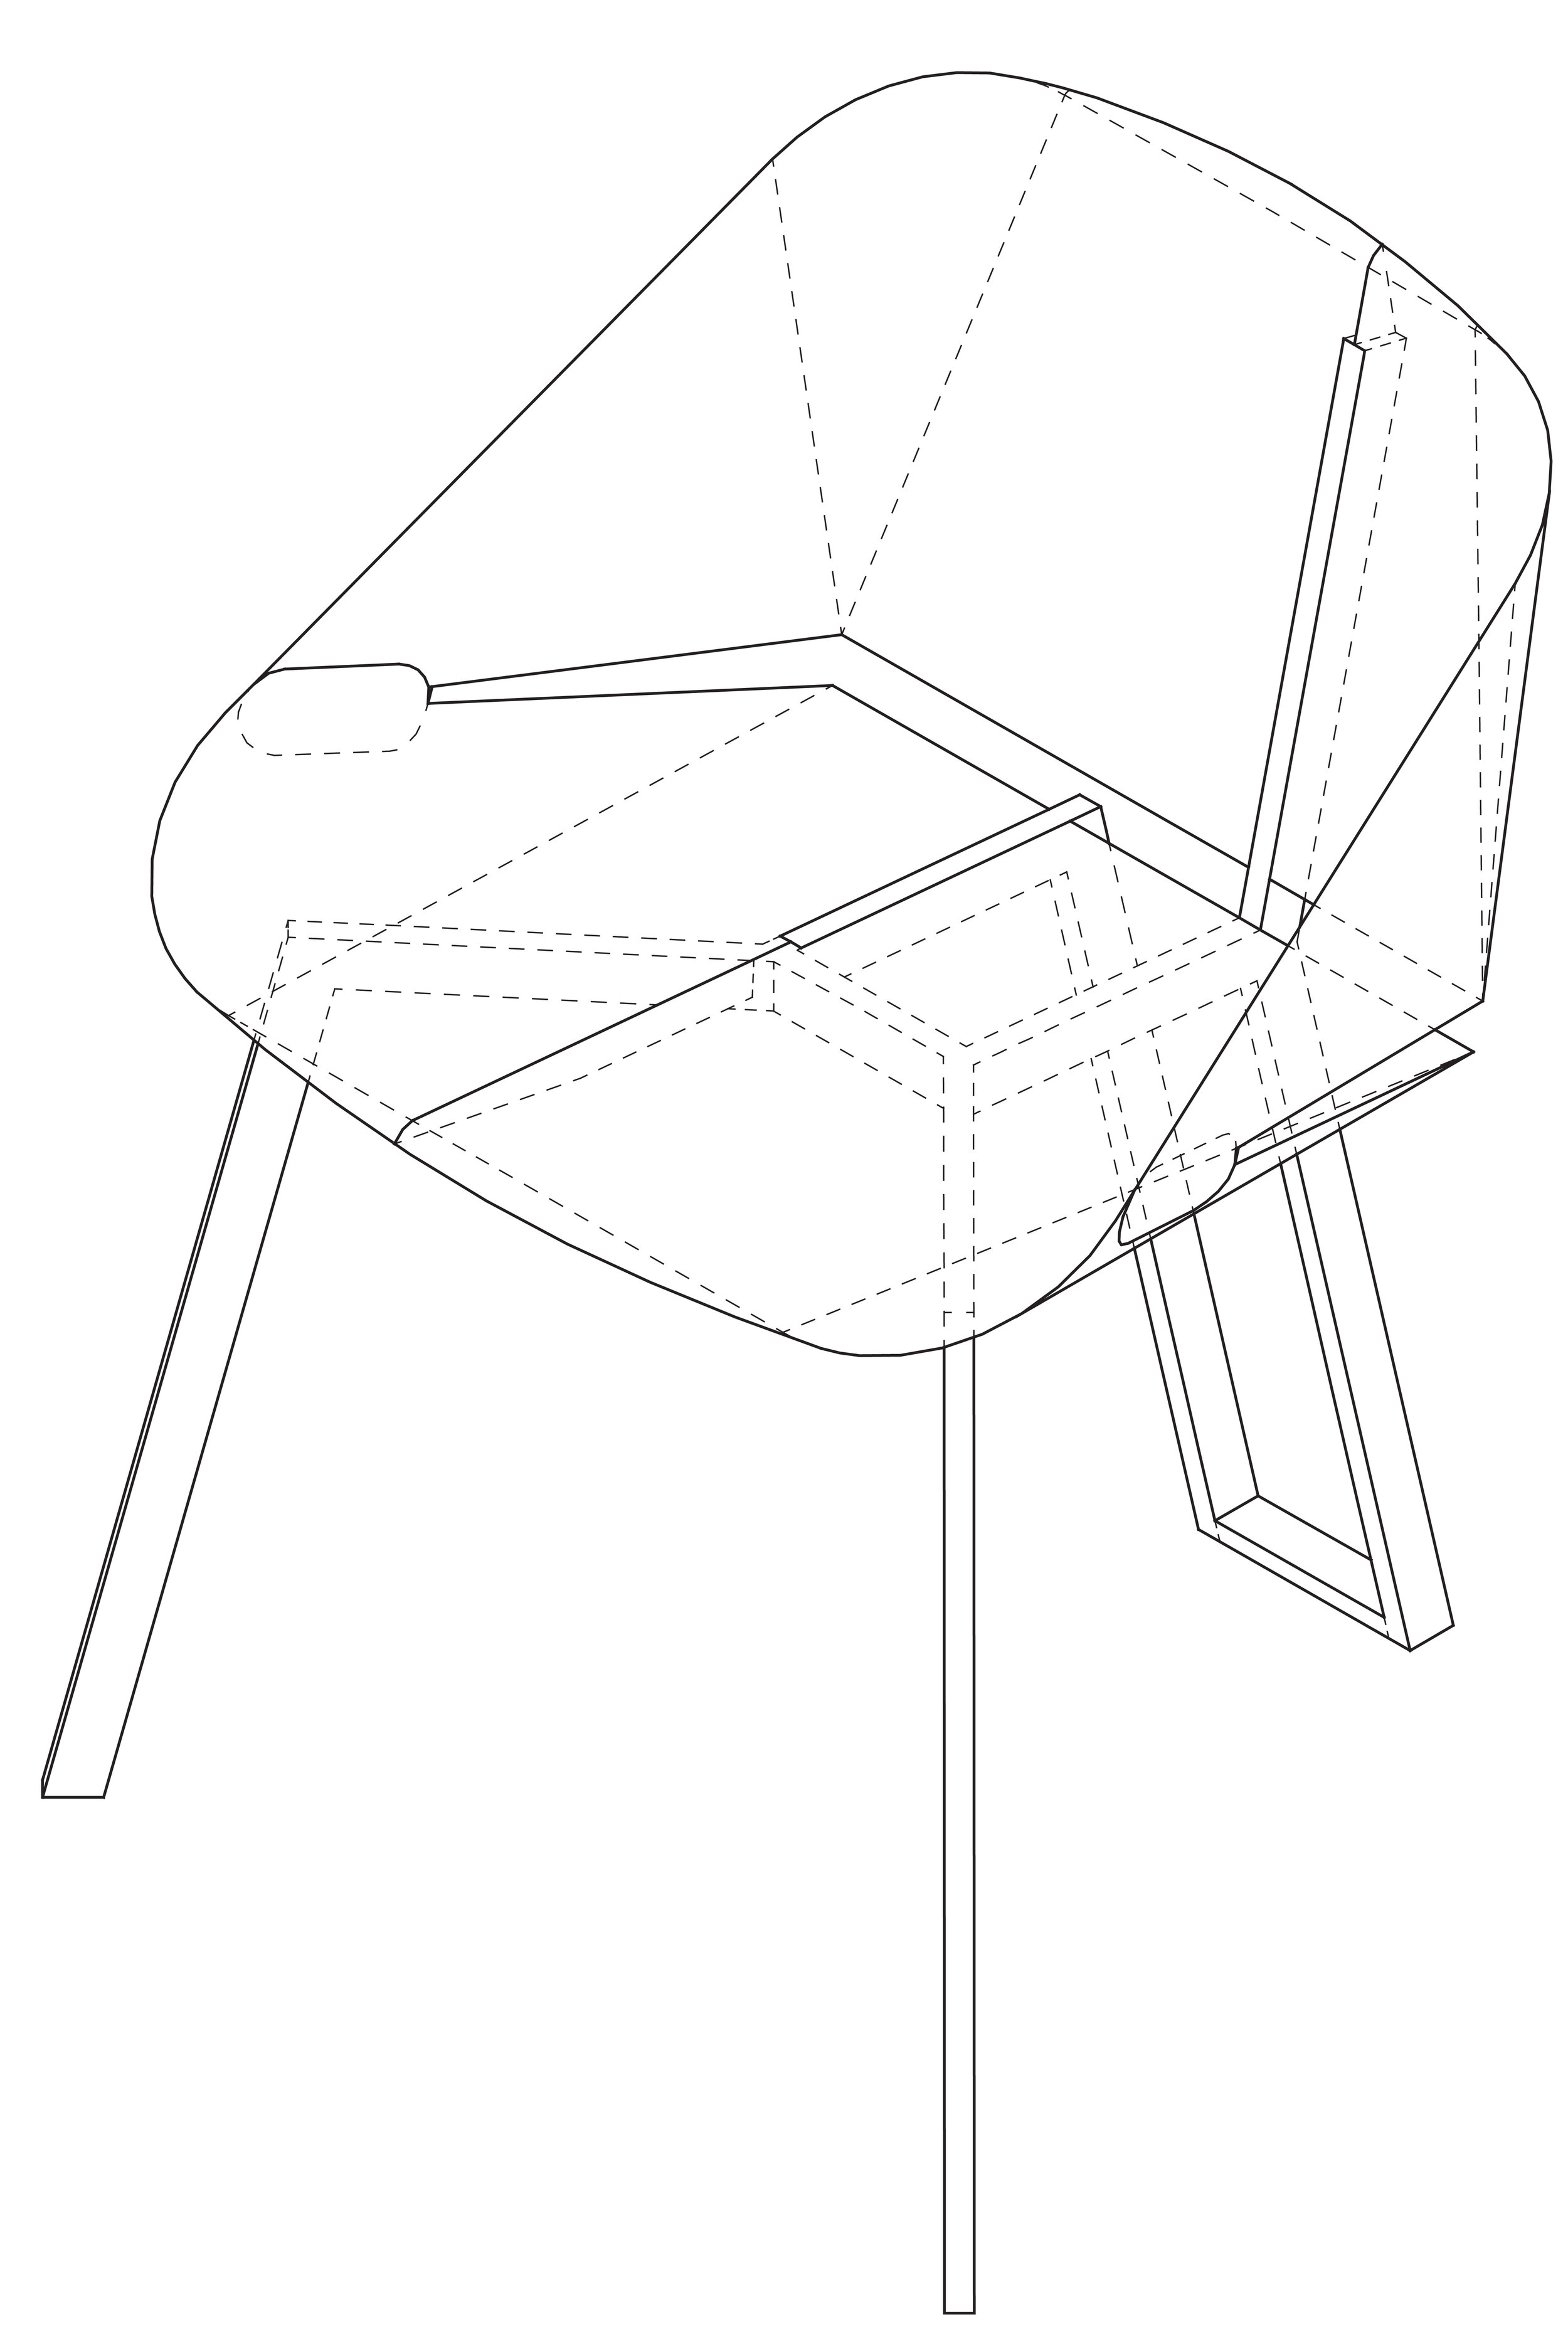 Axonometric drawing of the chair prototype